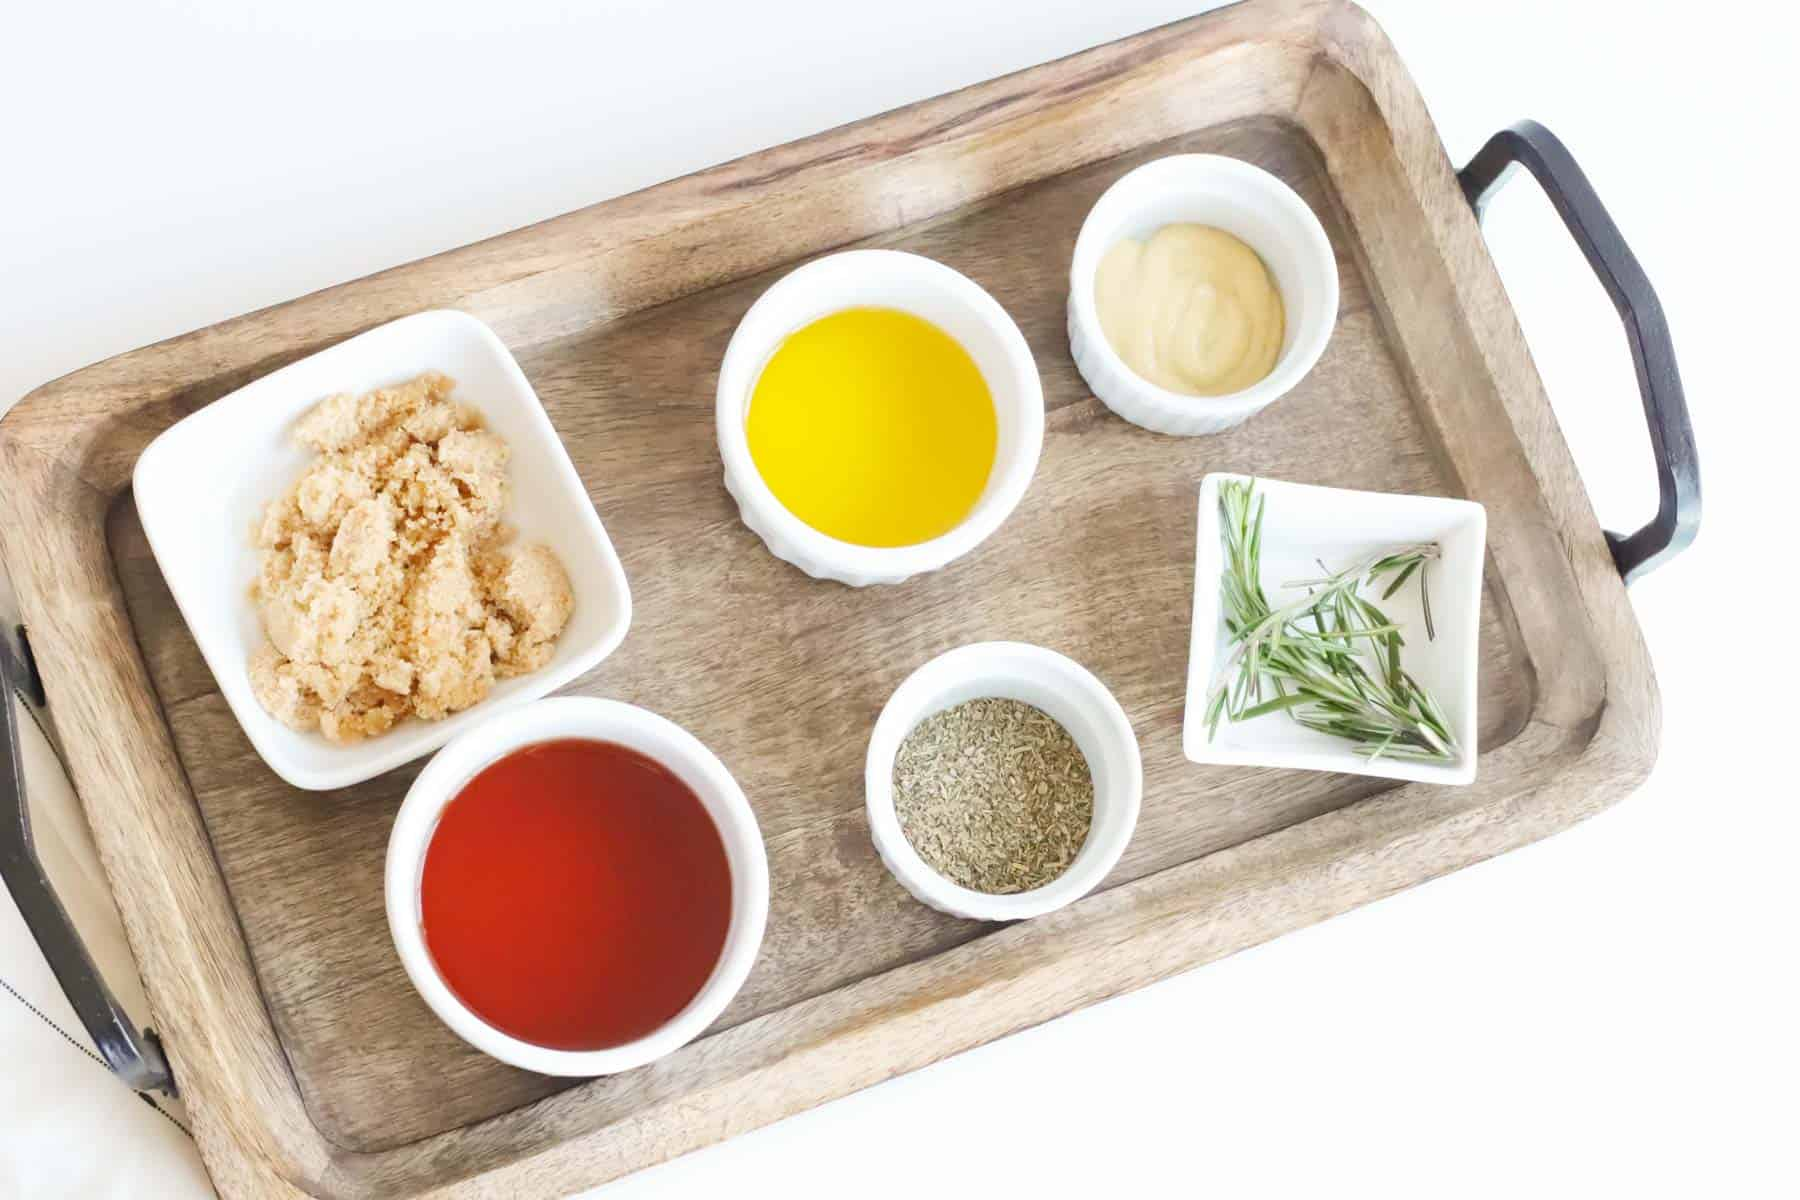 bowls of red wine vinegar, olive oil, dijon mustard, dried Italian seasoning, brown sugar, and fresh rosemary on a wooden serving tray